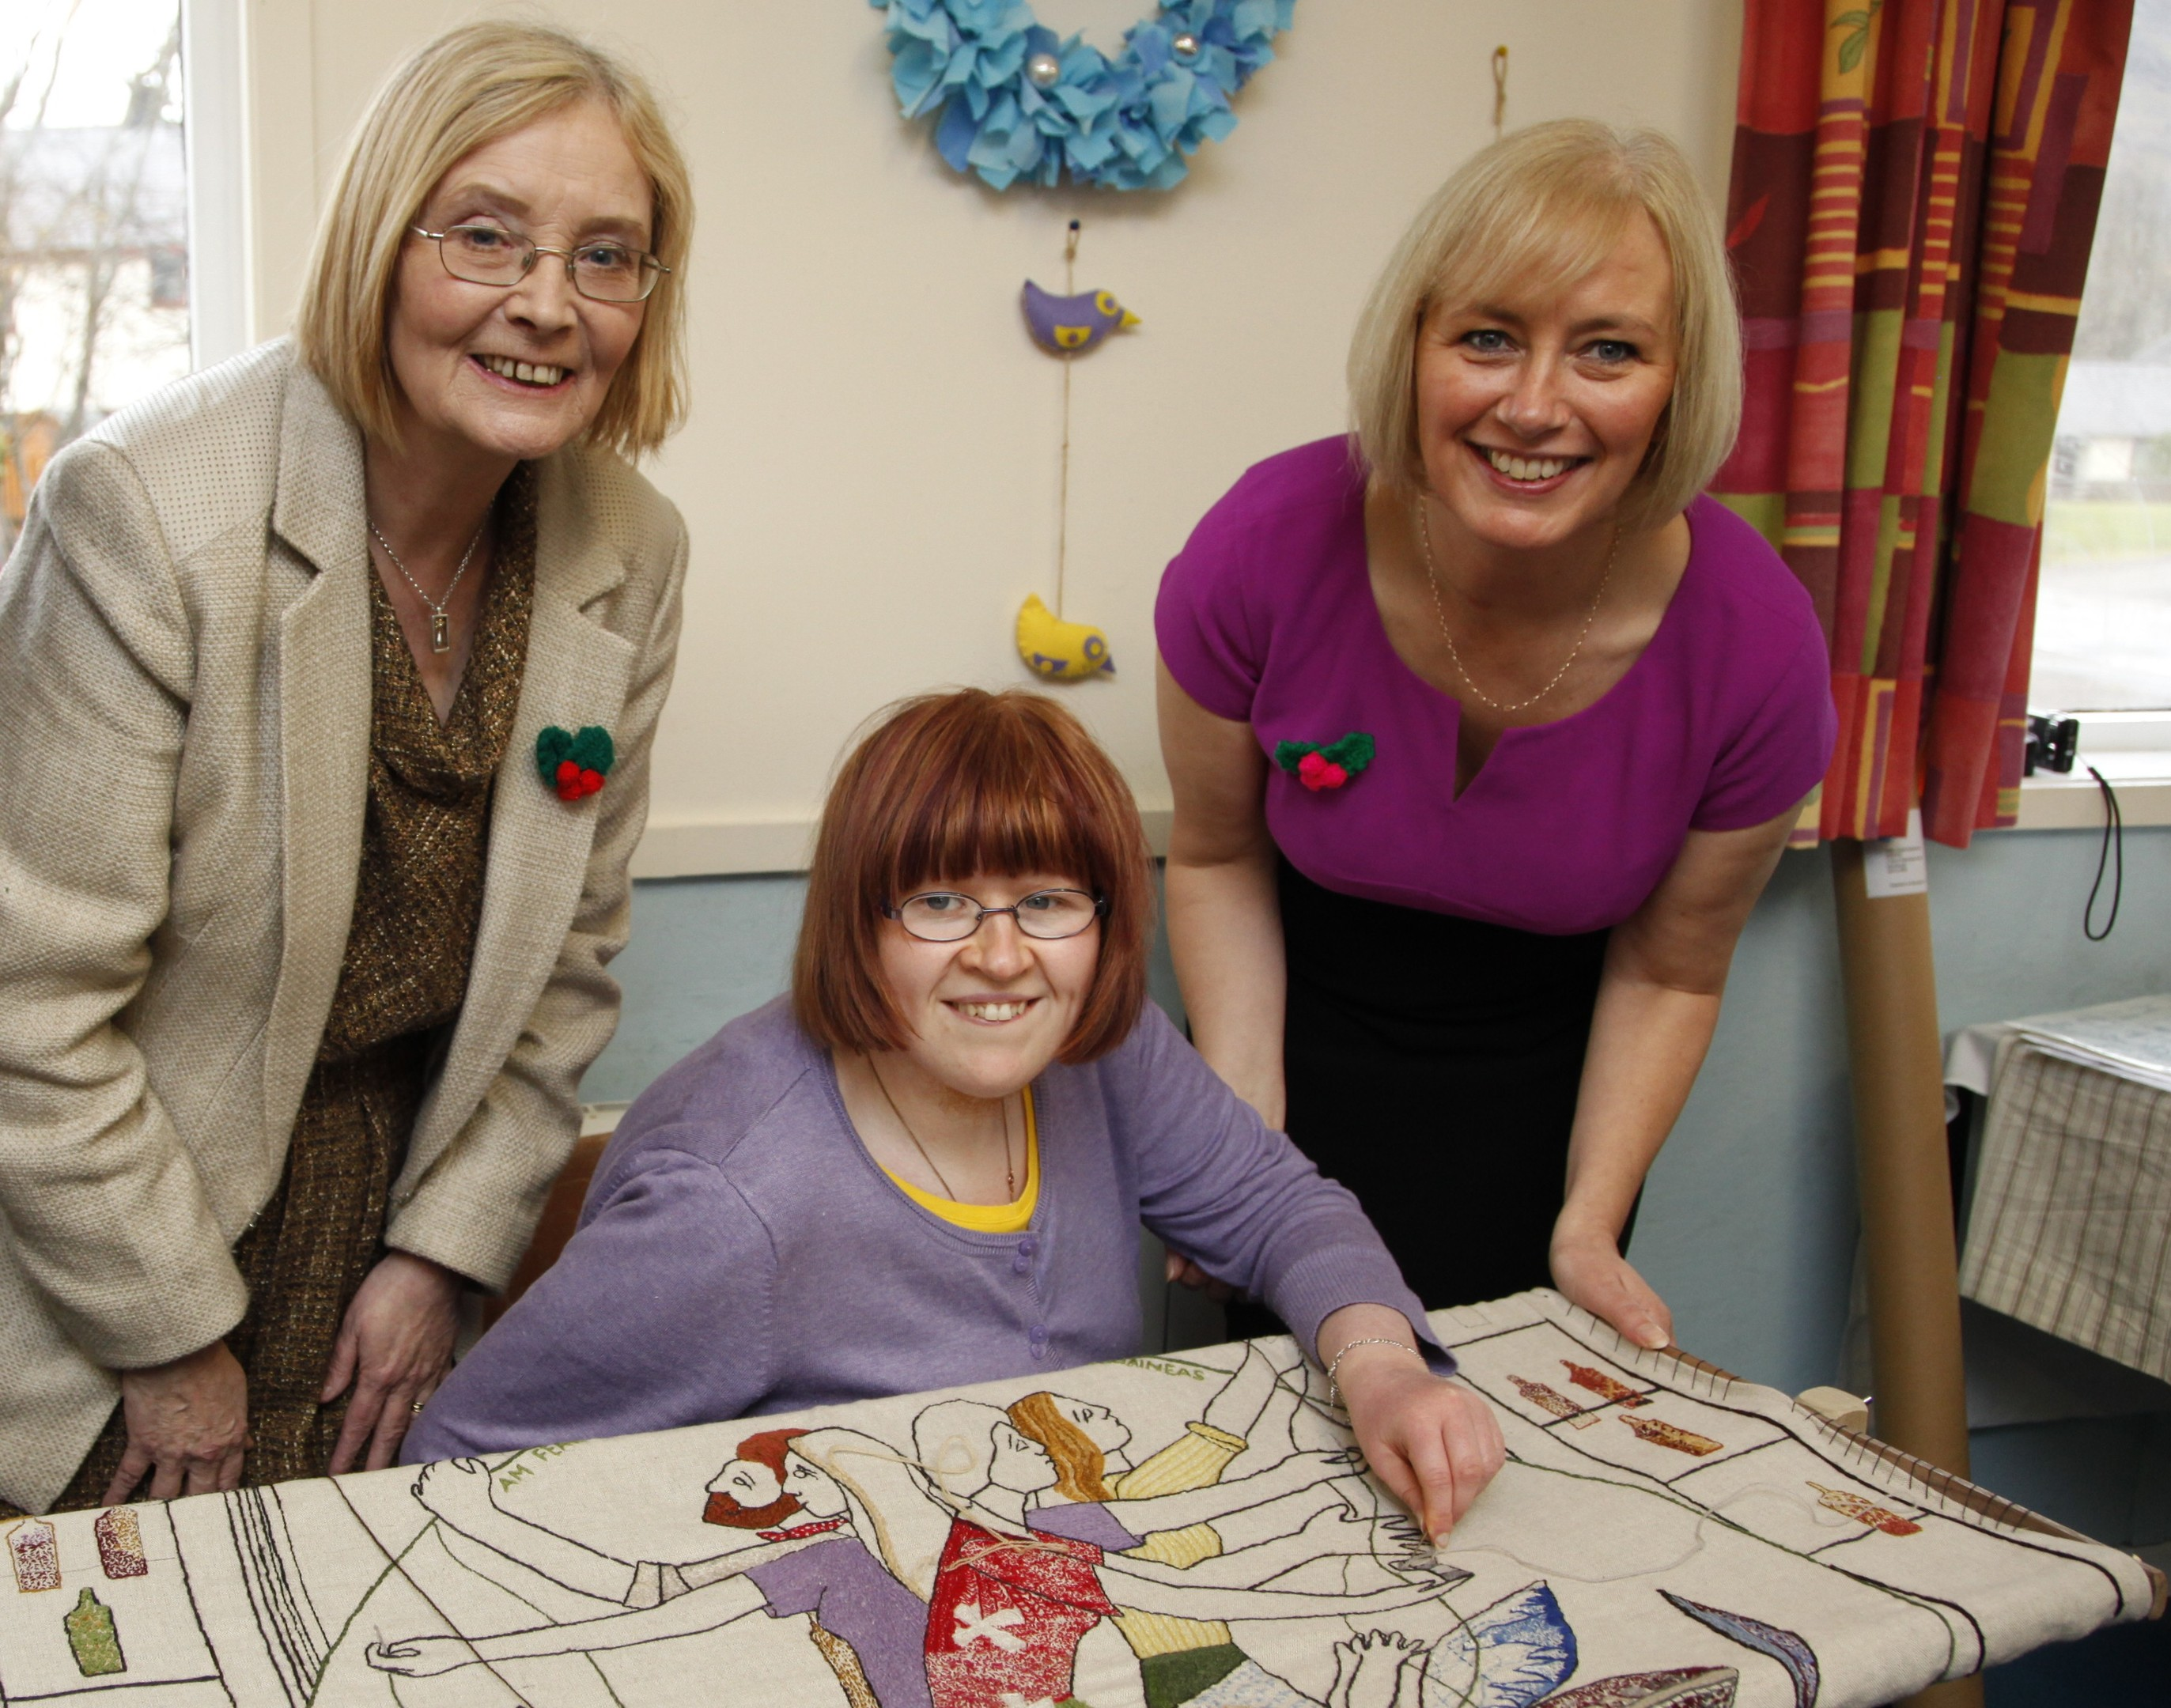 Presiding Officer Tricia Marwick MSP and Lyn Johnson, of Nimble Fingers, watch Donna MacKay adding a couple of stitches to the tapestry